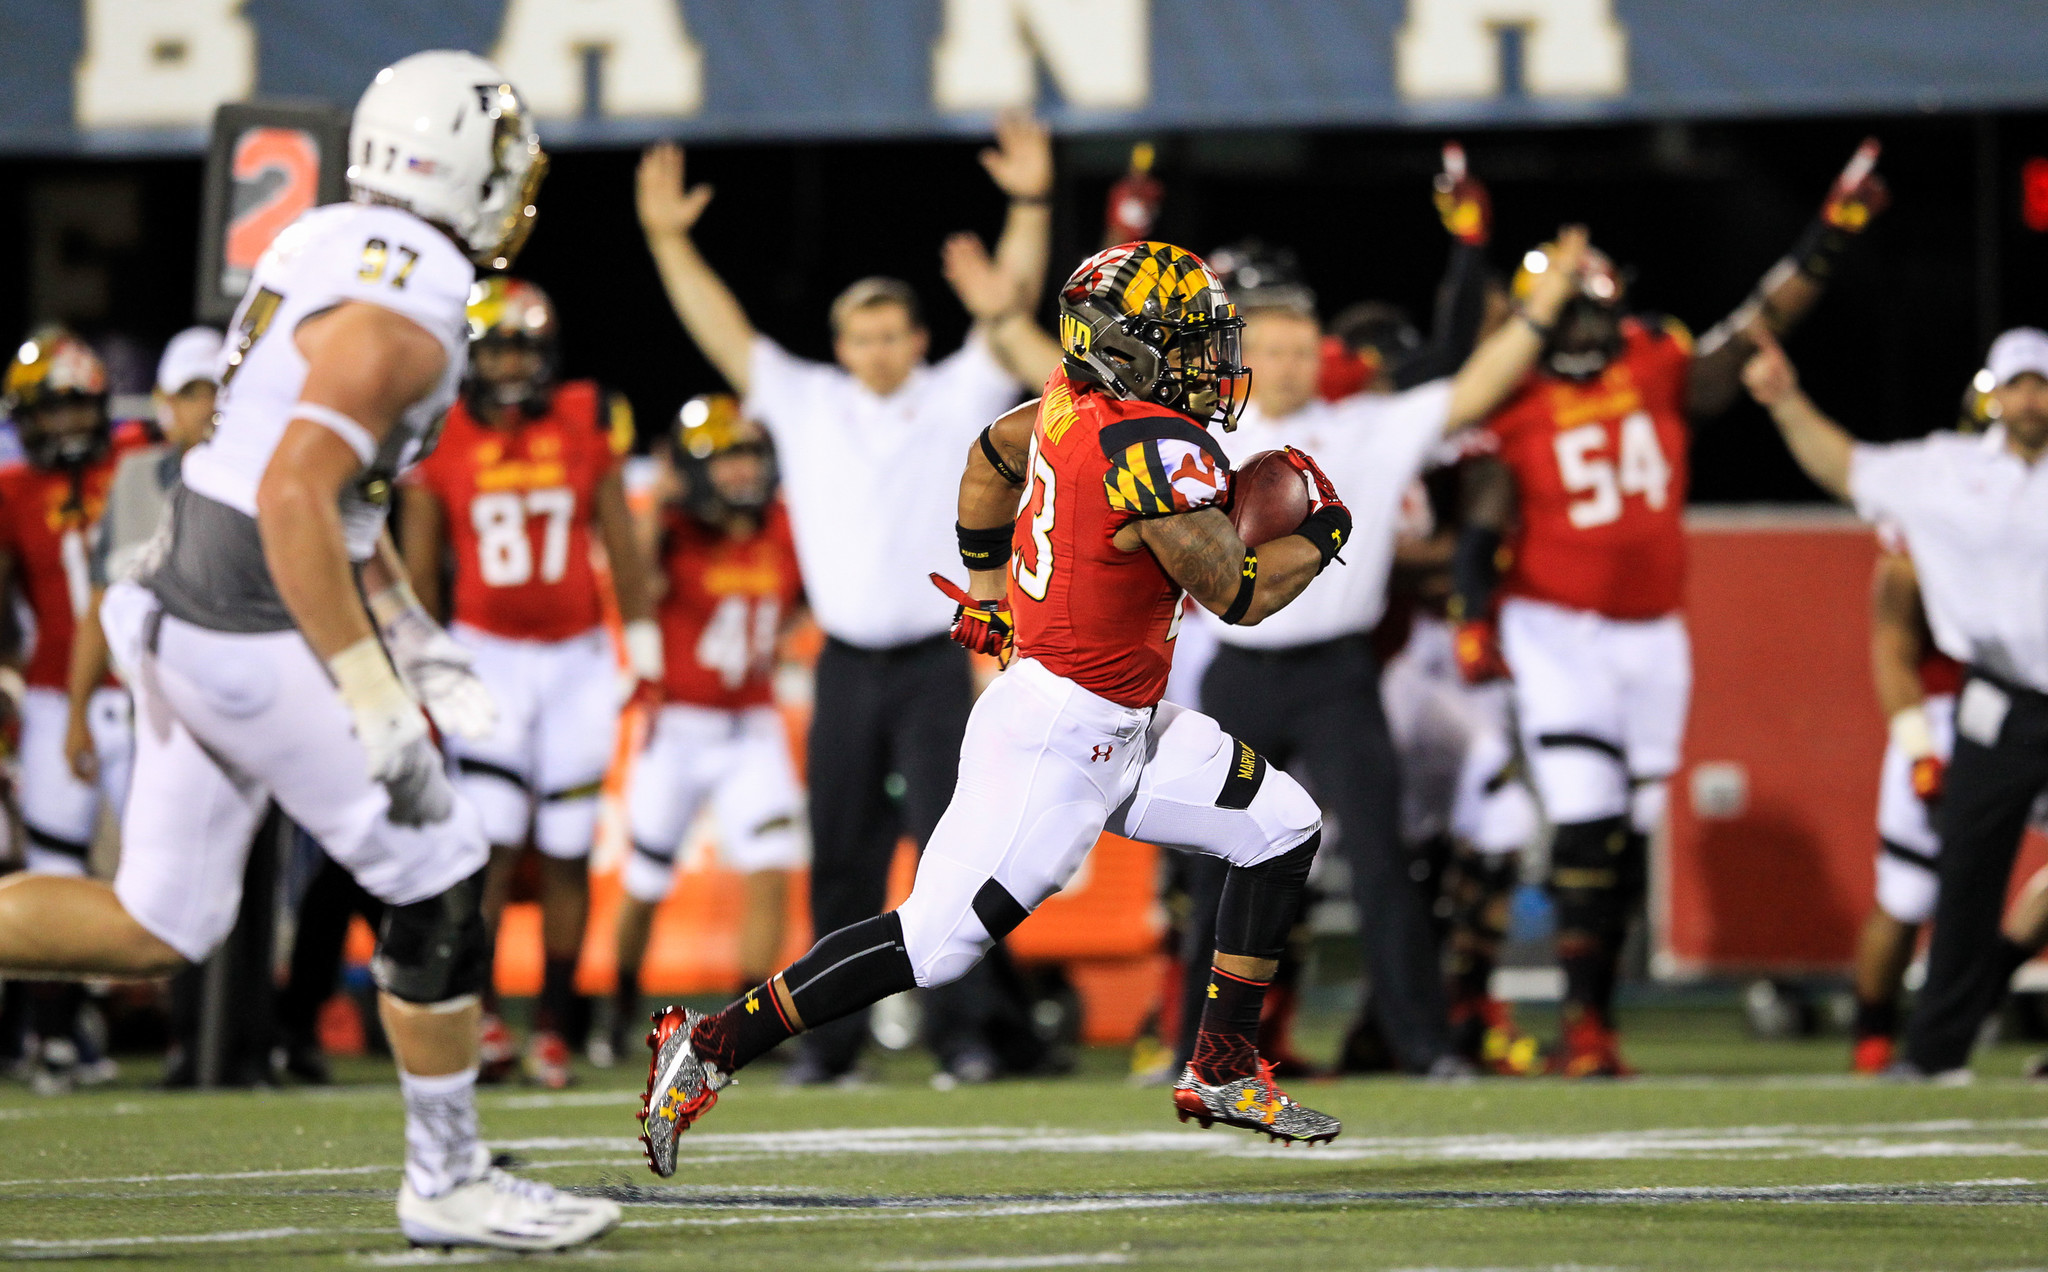 Bal-terps-confidence-in-each-other-led-to-double-overtime-win-durkin-says-20160919